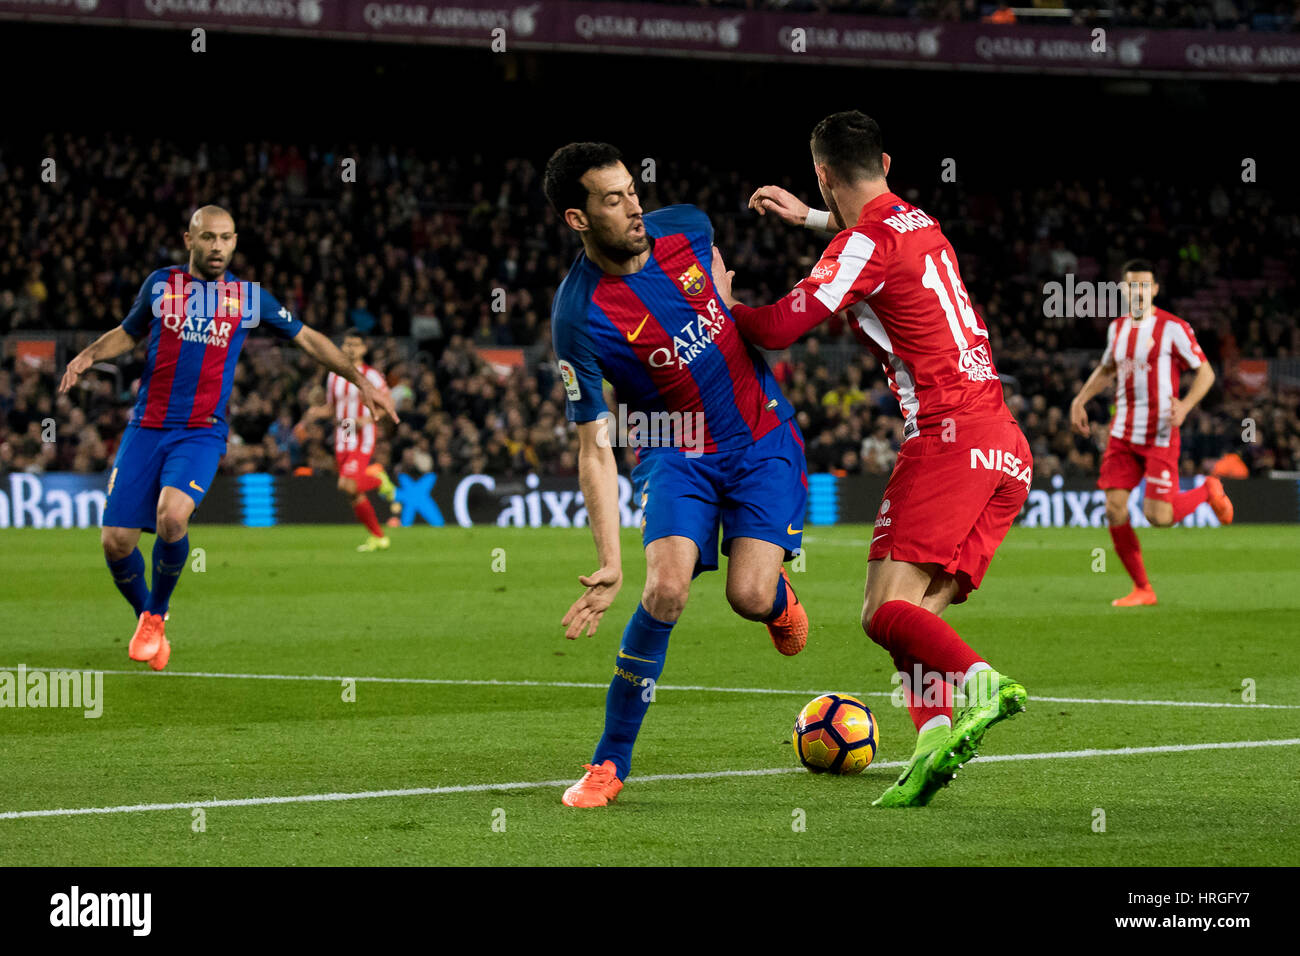 Camp Not Stadium, Barcelona, Spain. 1st March, 2017. Burgui escapes from Busquets at Camp Nou Stadium, Barcelona, - Stock Image